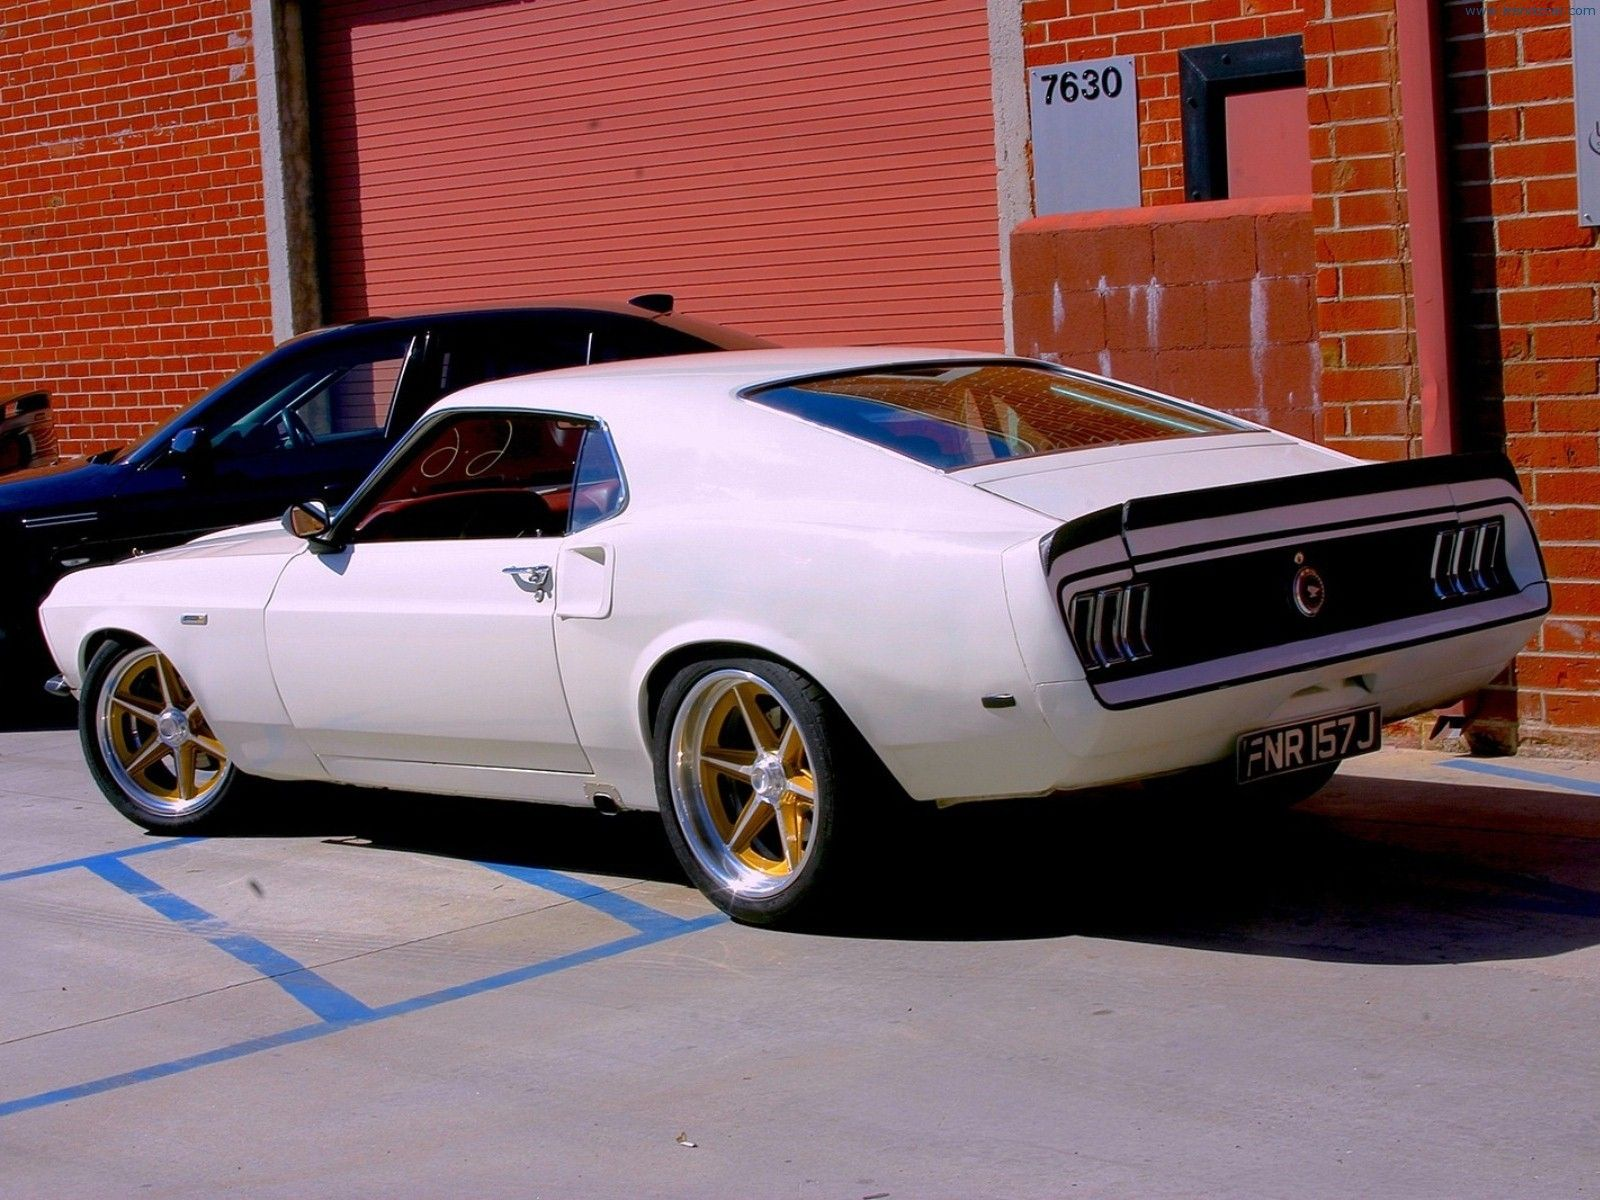 1969 Ford Mustang Rear Angle Fast & Furious 6 Car